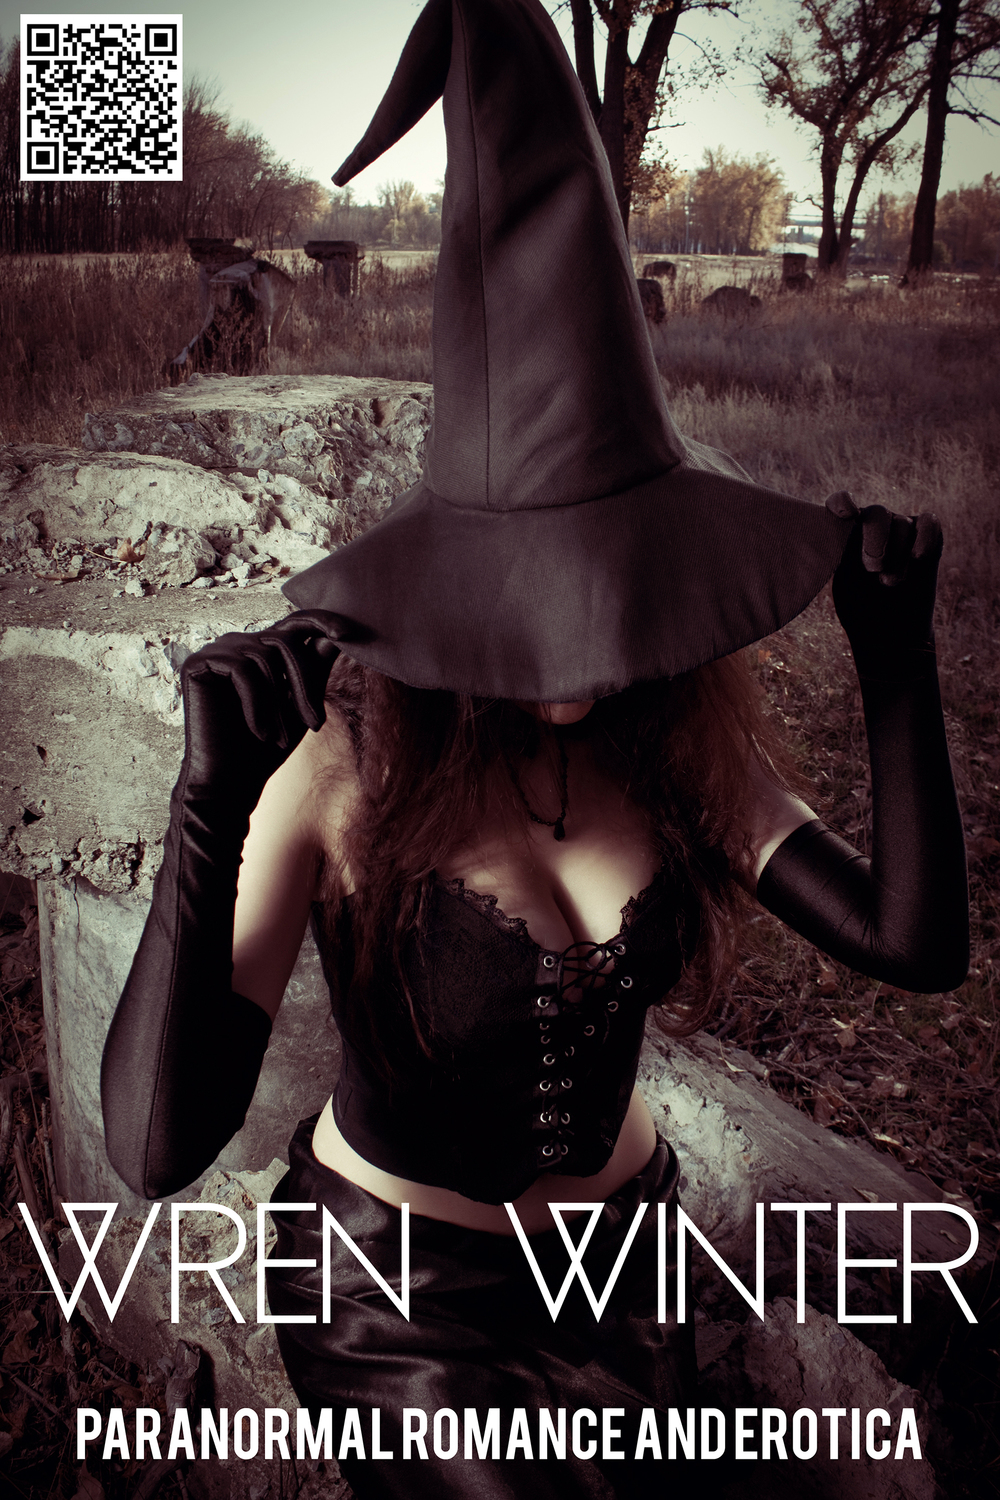 Wren Winter's Erotica